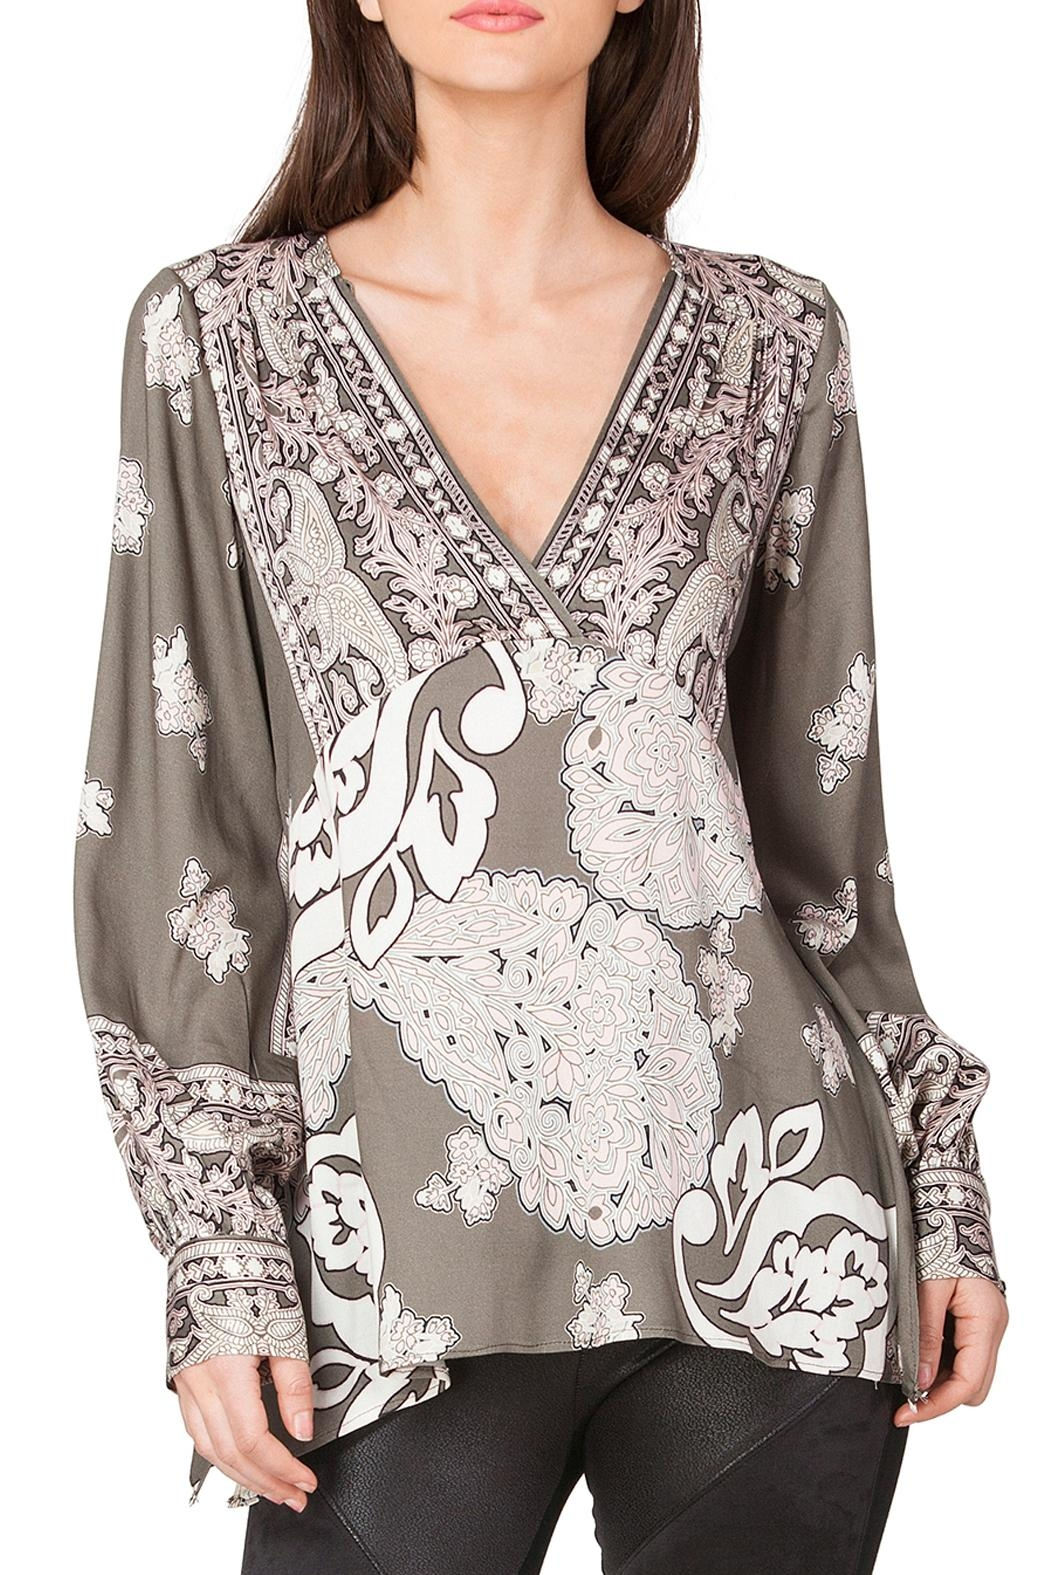 Hale Bob Viviana Satin Tunic Top - Main Image